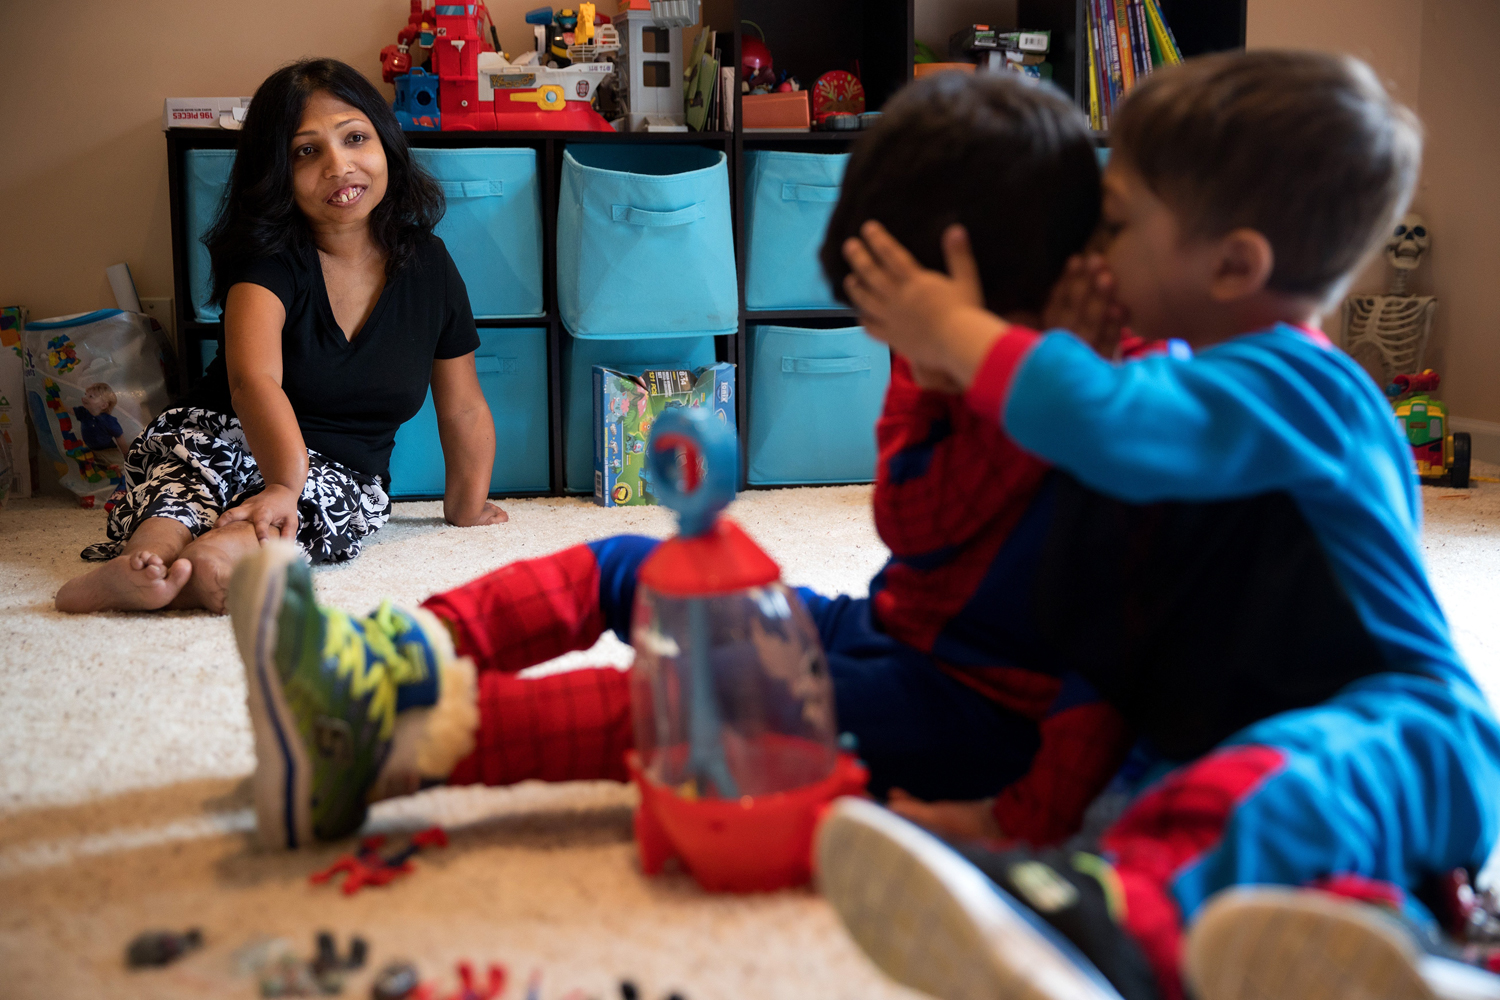 Neena Nizar, whose Jansen's went undiagnosed in her own childhood in the United Arab Emirates, watches her sons whisper to each other while playing a game with superhero figures in March at their Elkhorn home.